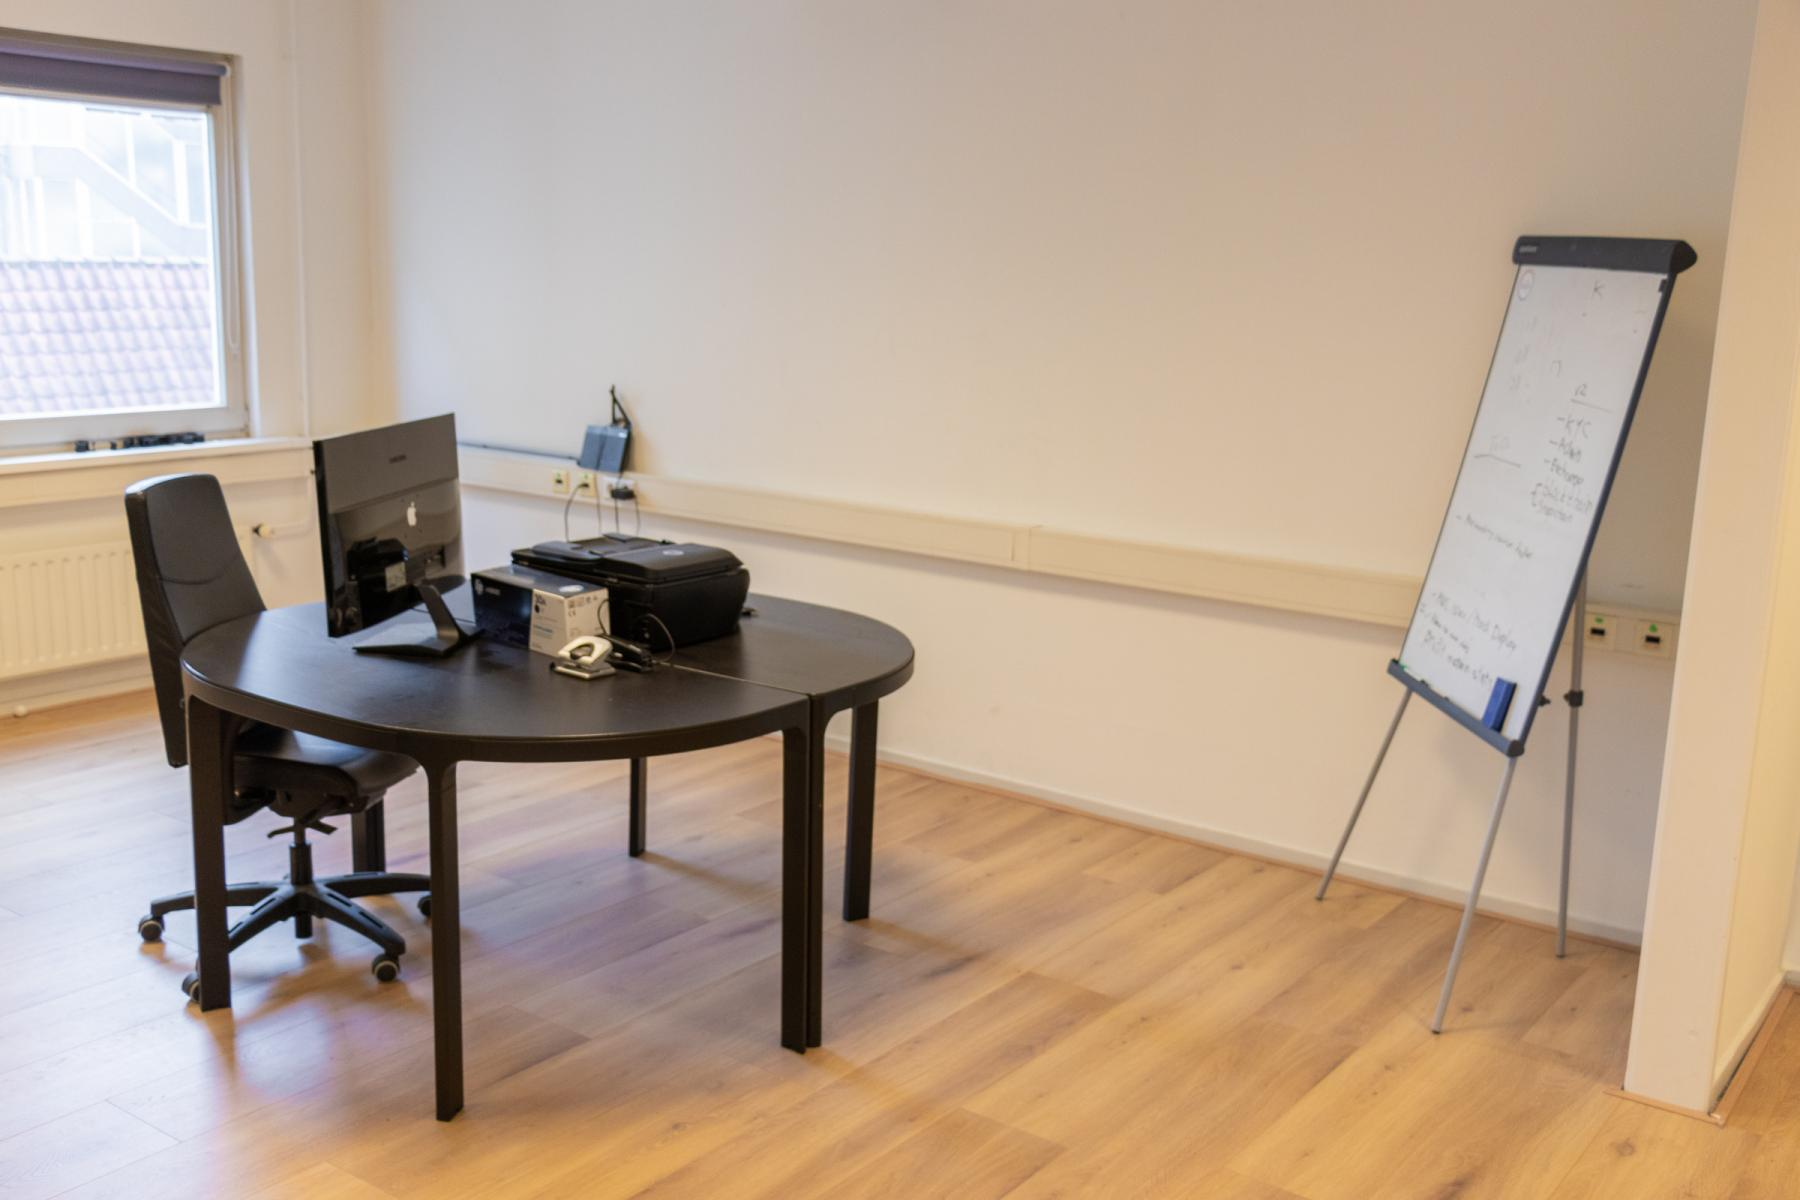 Rent office space Amstel 62, Amsterdam (8)